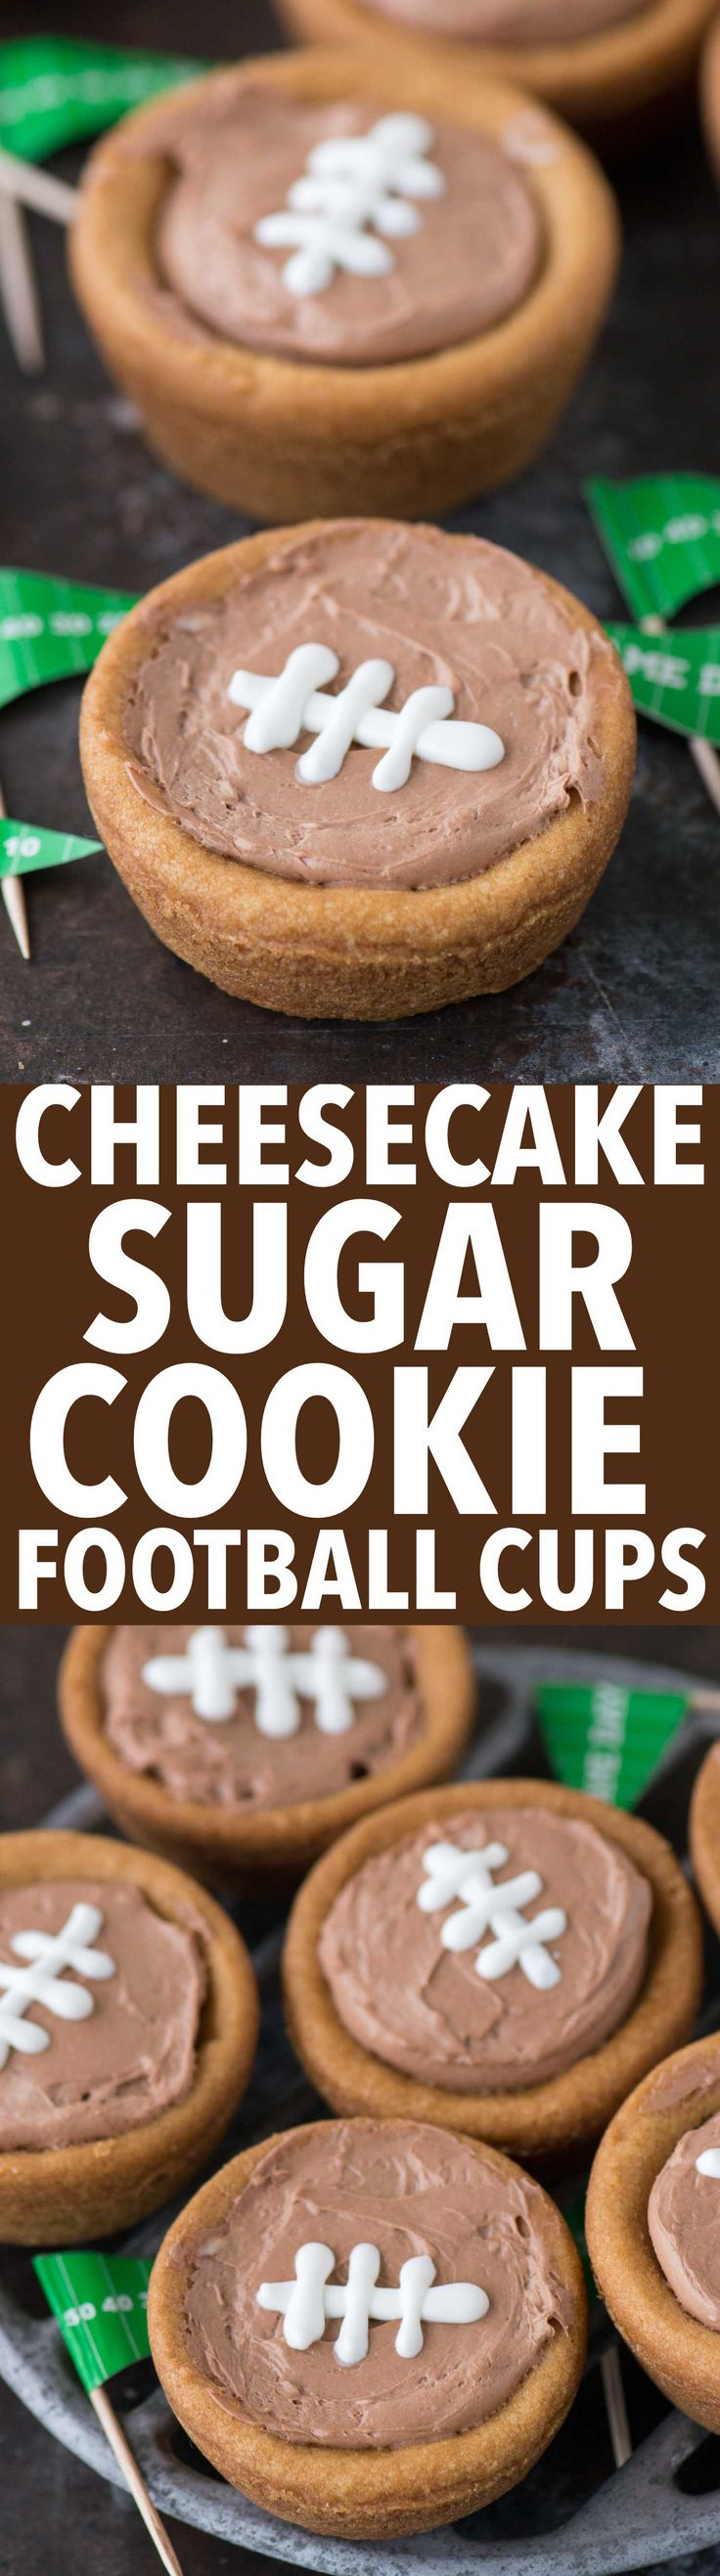 787 best Game Day images on Pinterest | Kitchens, Side dishes and Drink